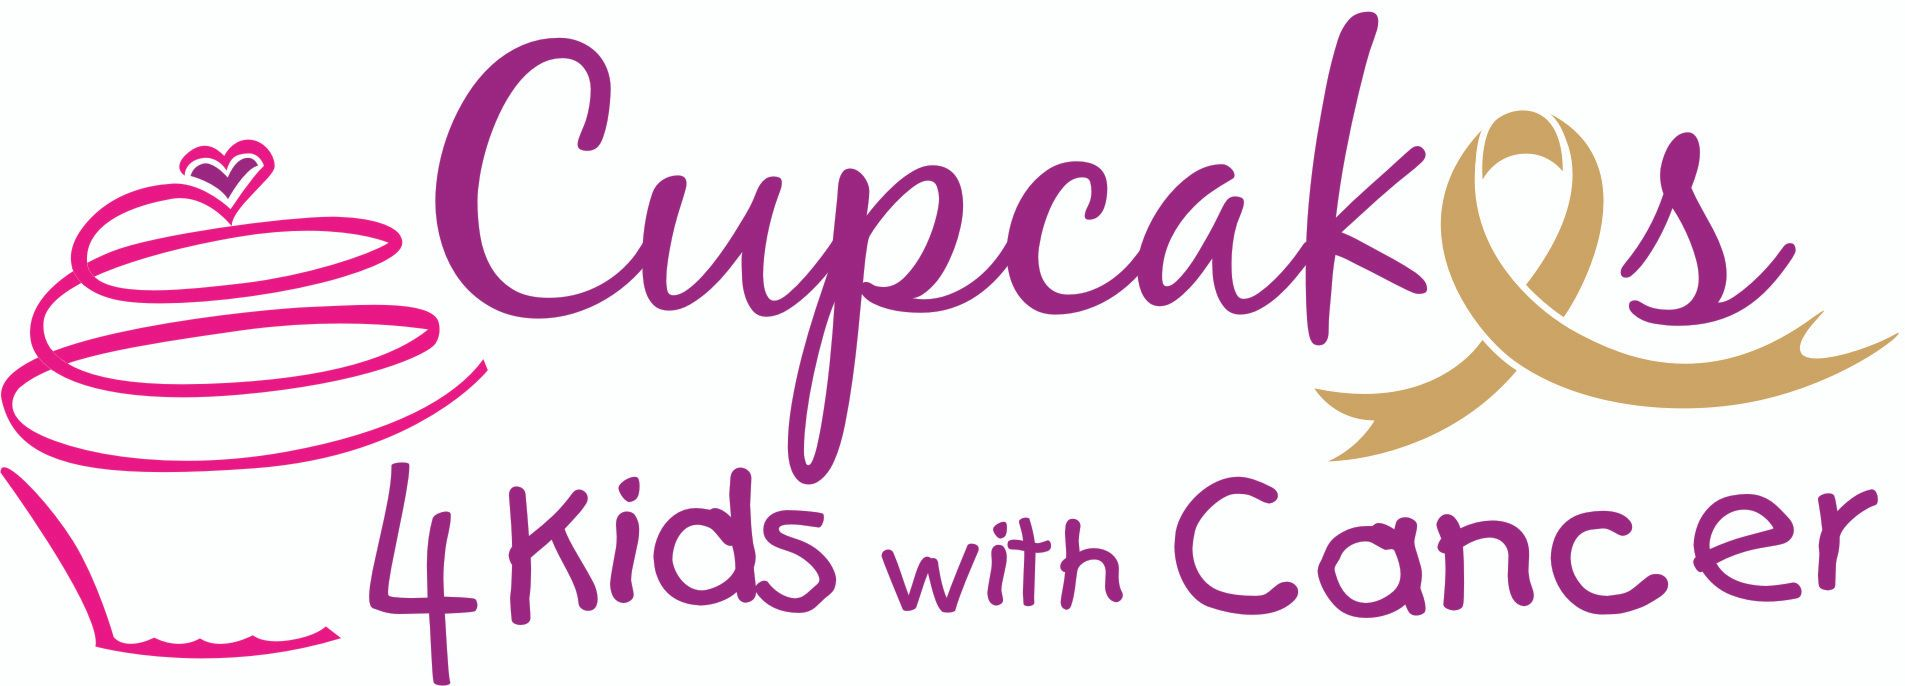 Cupcakes of Hope Thumb Image